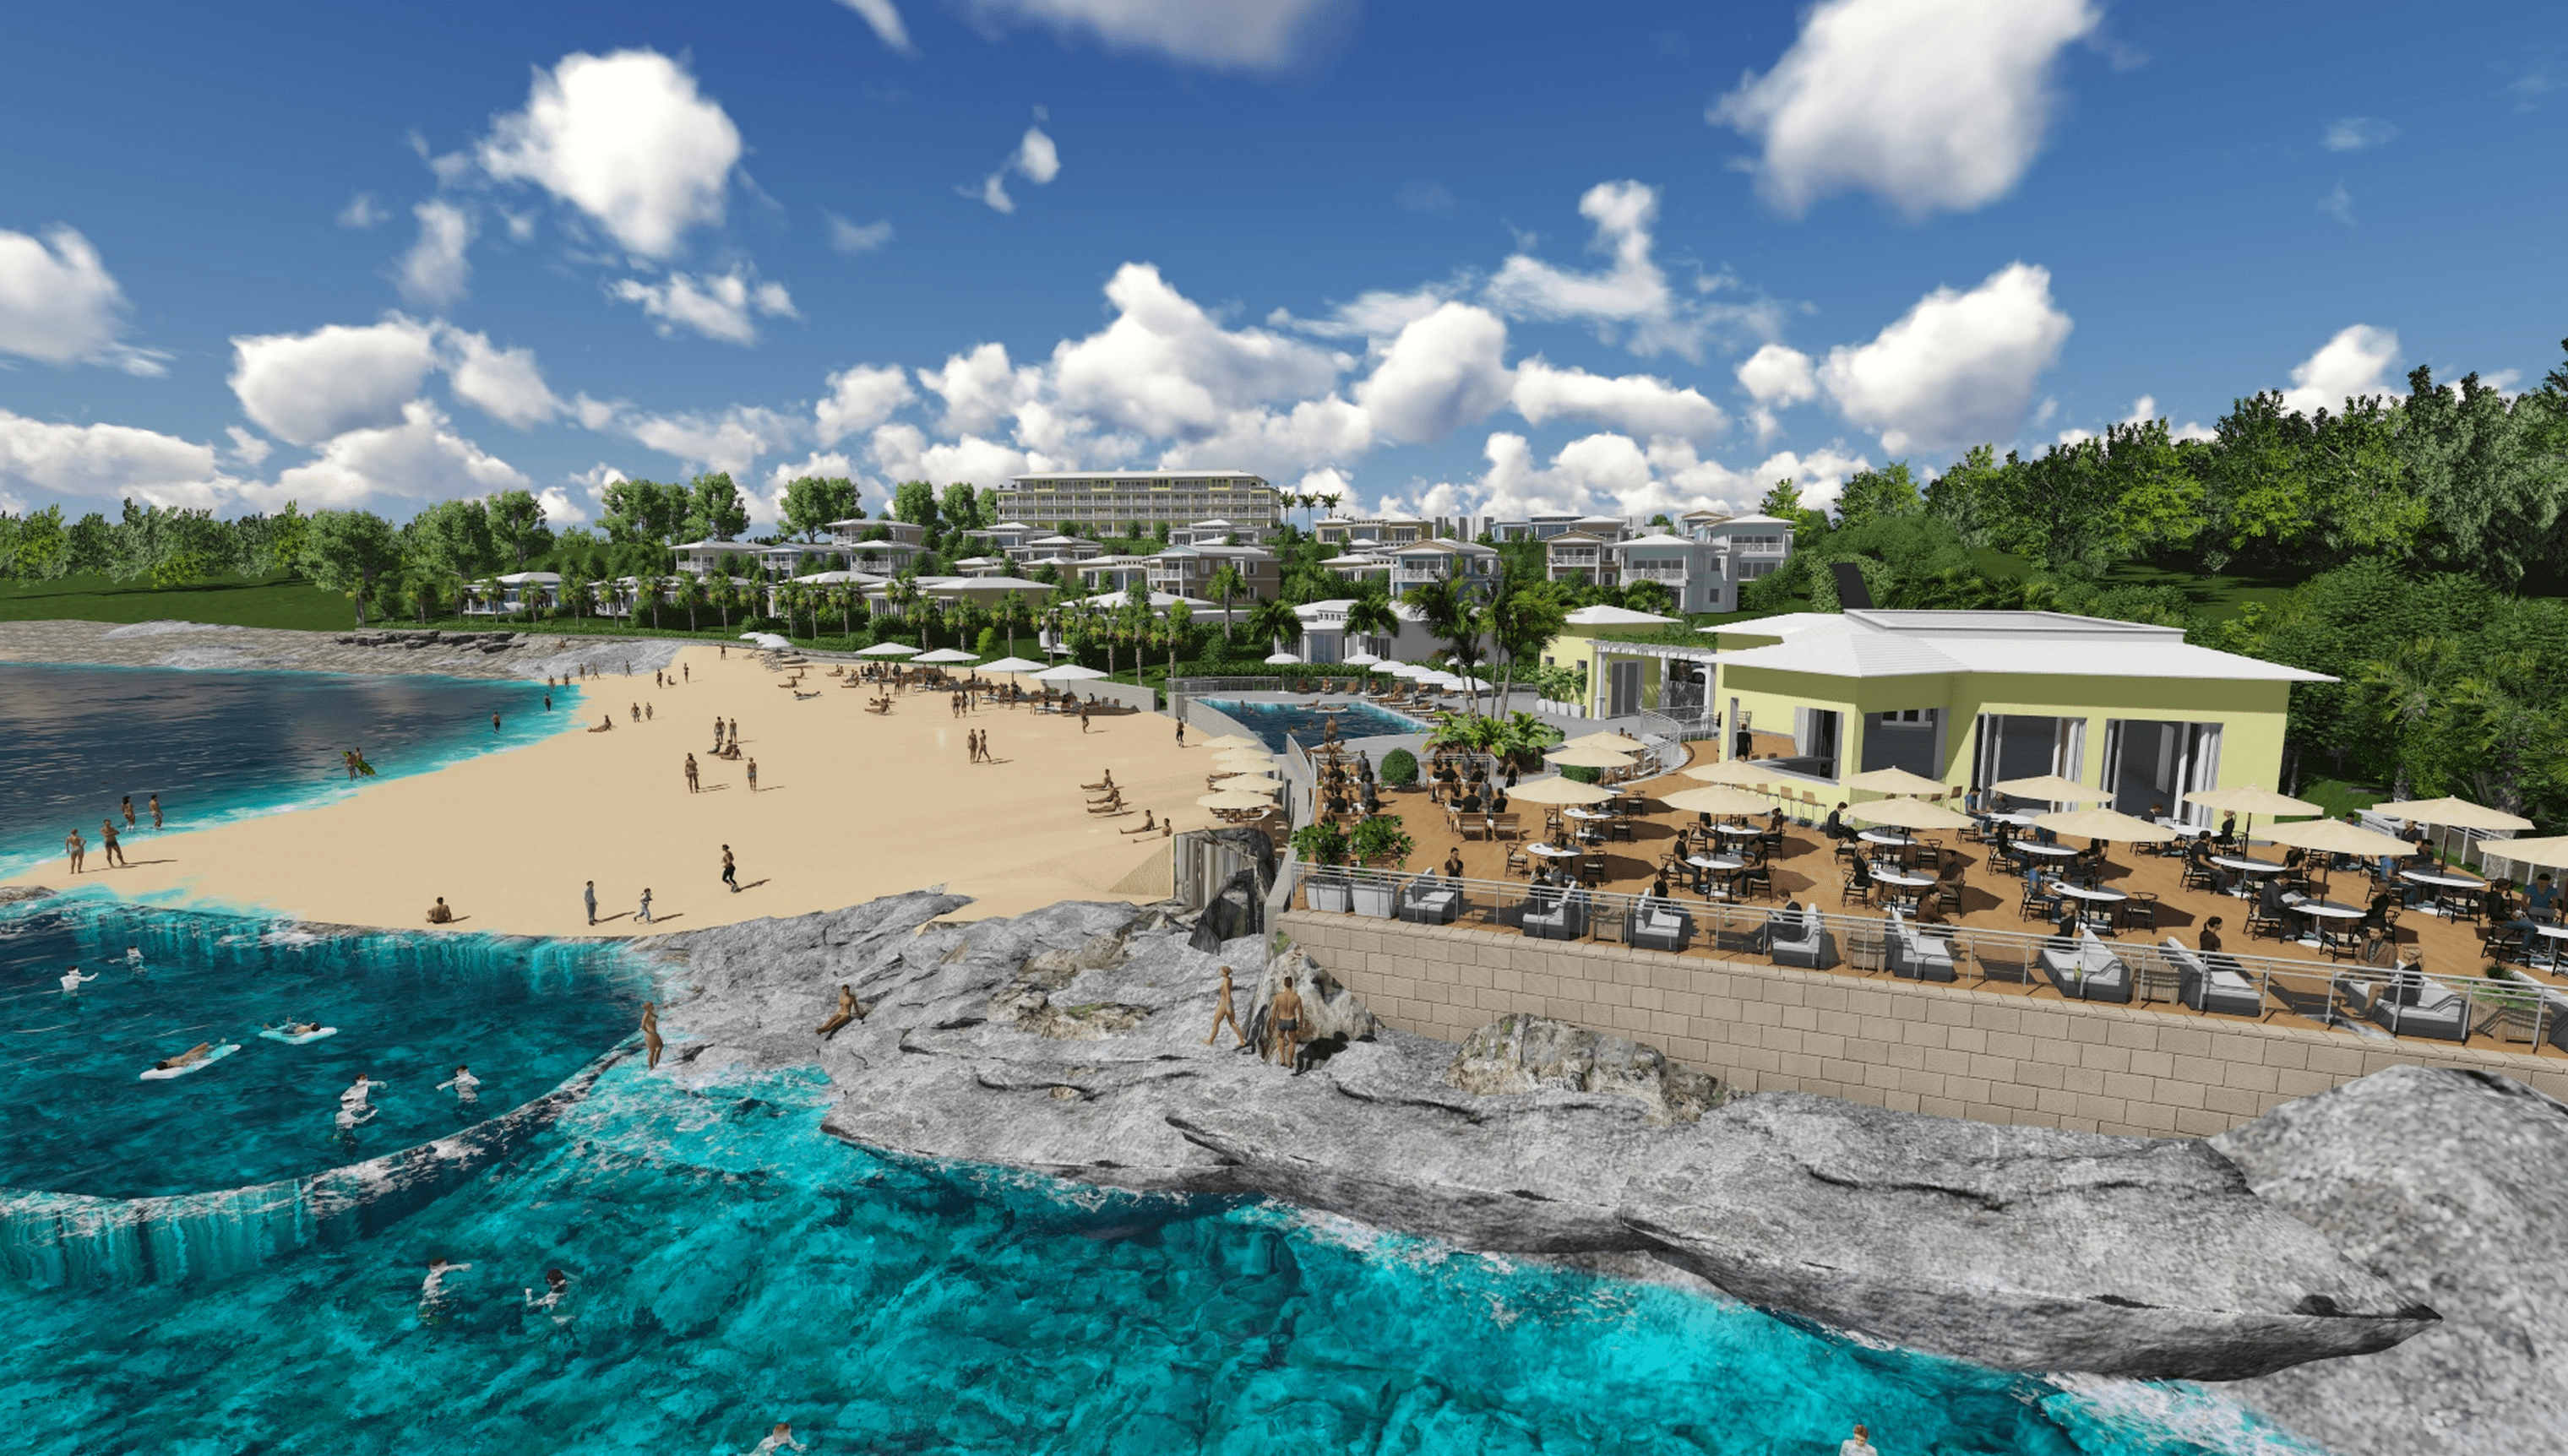 Ariel Sands Cottage Colony Hotel To Reopen In Bermuda